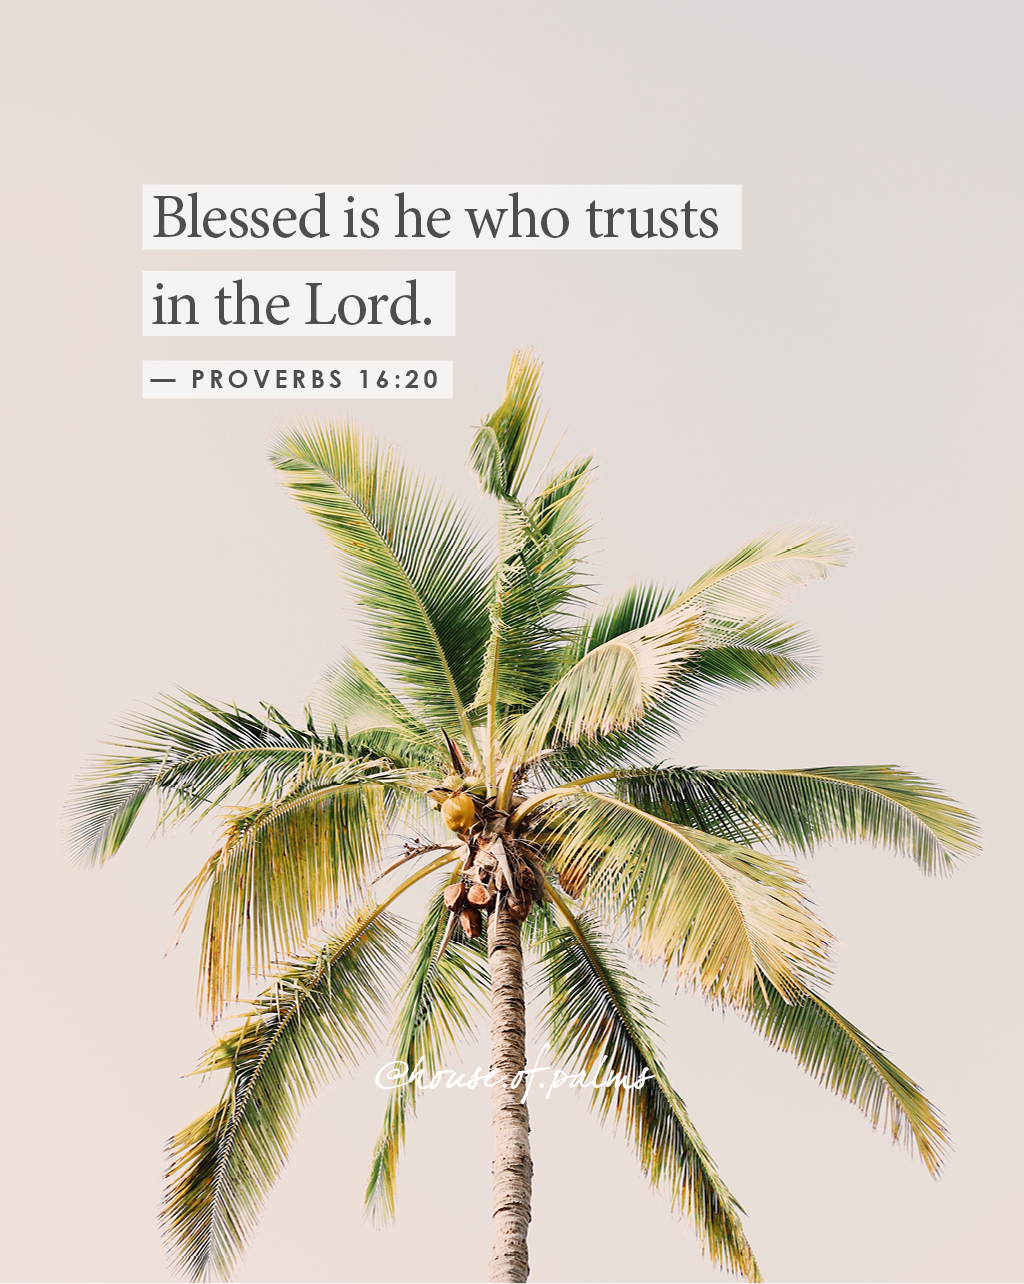 Blessed are those who trust in the Lord